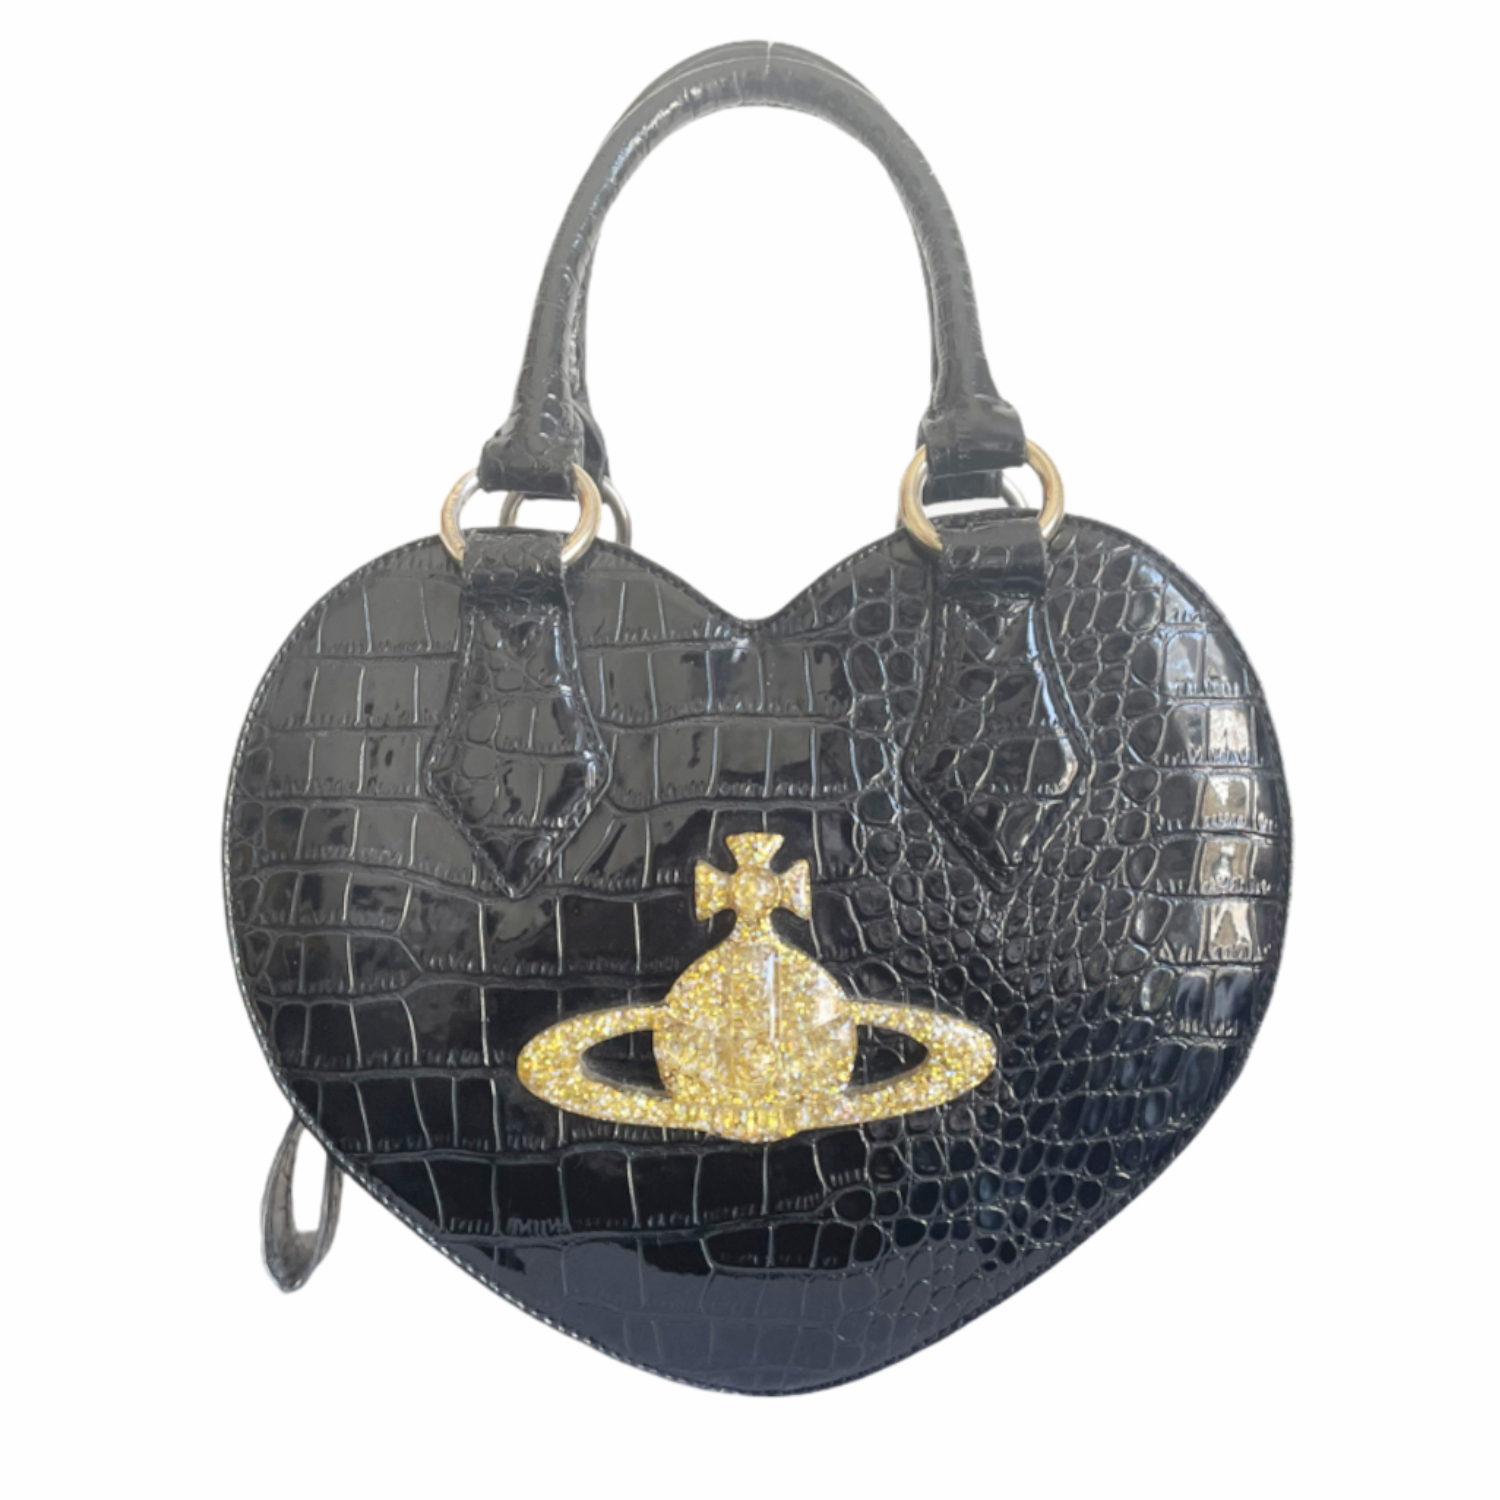 Vivienne Westwood Chancery Heart Bag in Black | NITRYL